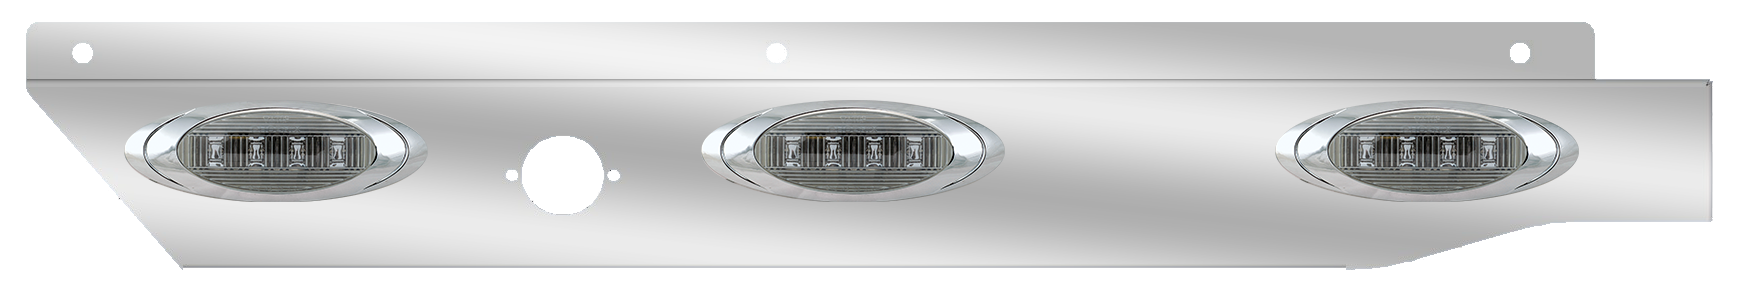 three l.e.d. lights on a stainless steel panel